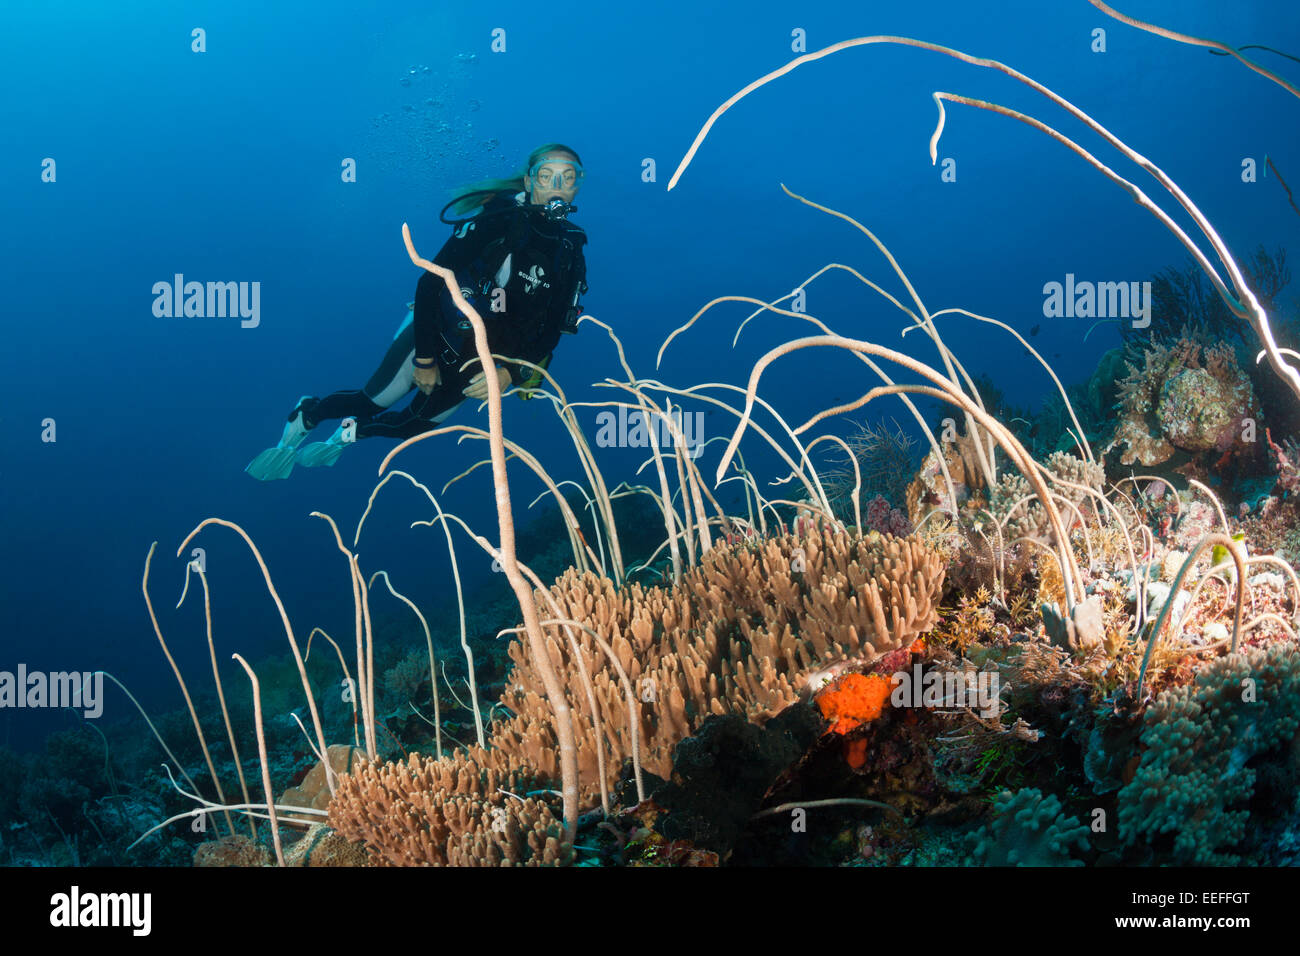 Diver over Field of Whip Corals, Junceella fragilis, Tanimbar Islands, Moluccas, Indonesia Stock Photo